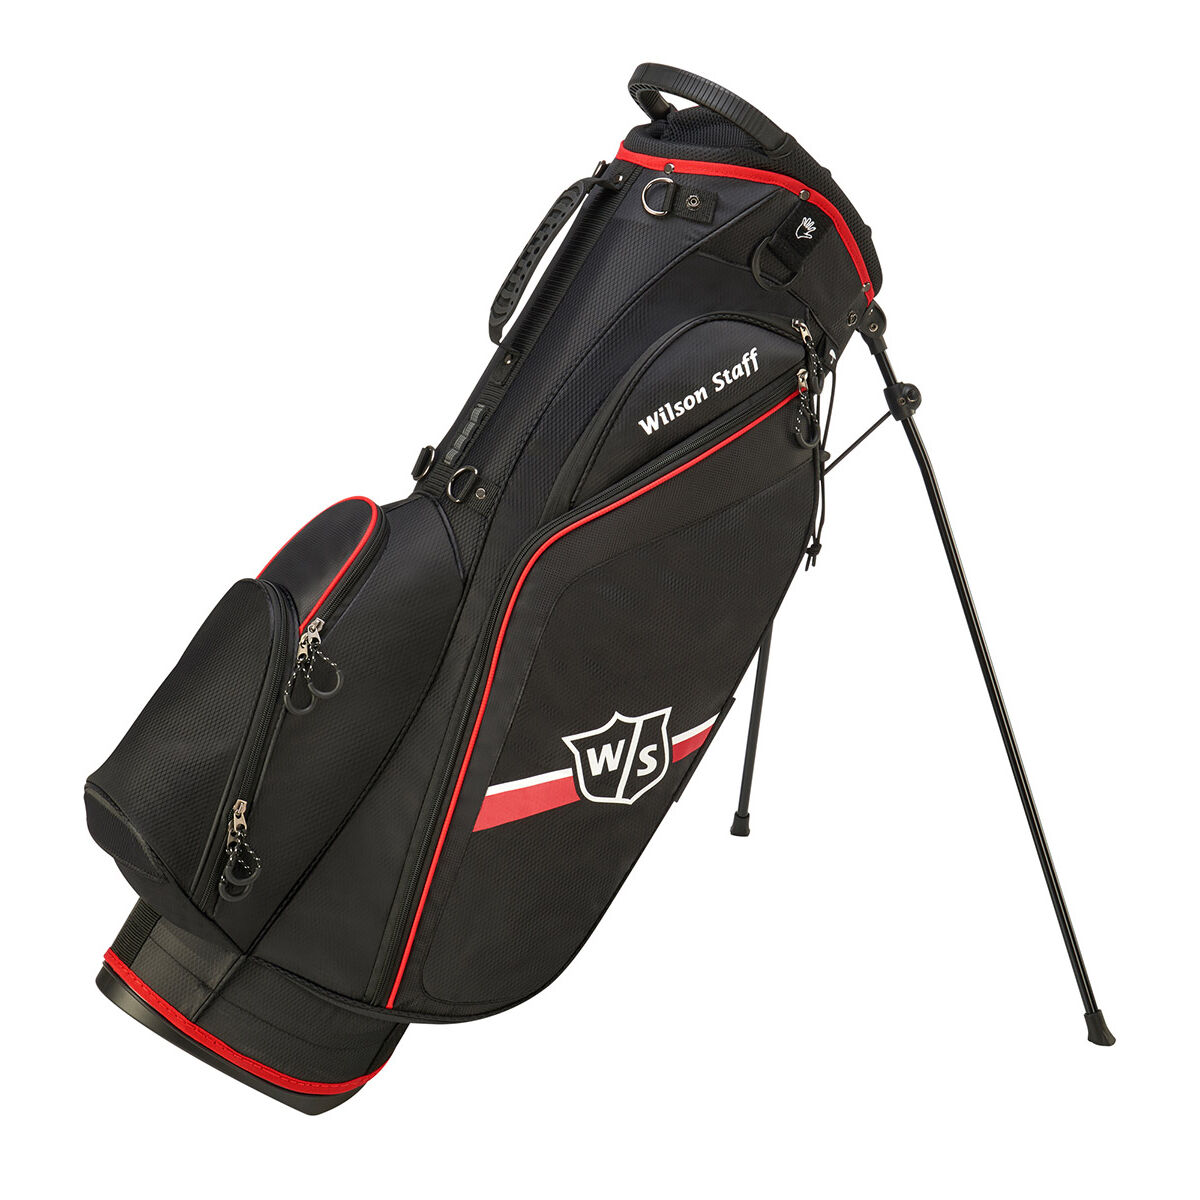 Wilson Staff Black and Red Lightweight Lite II Golf Stand Bag, Size: One Size | American Golf